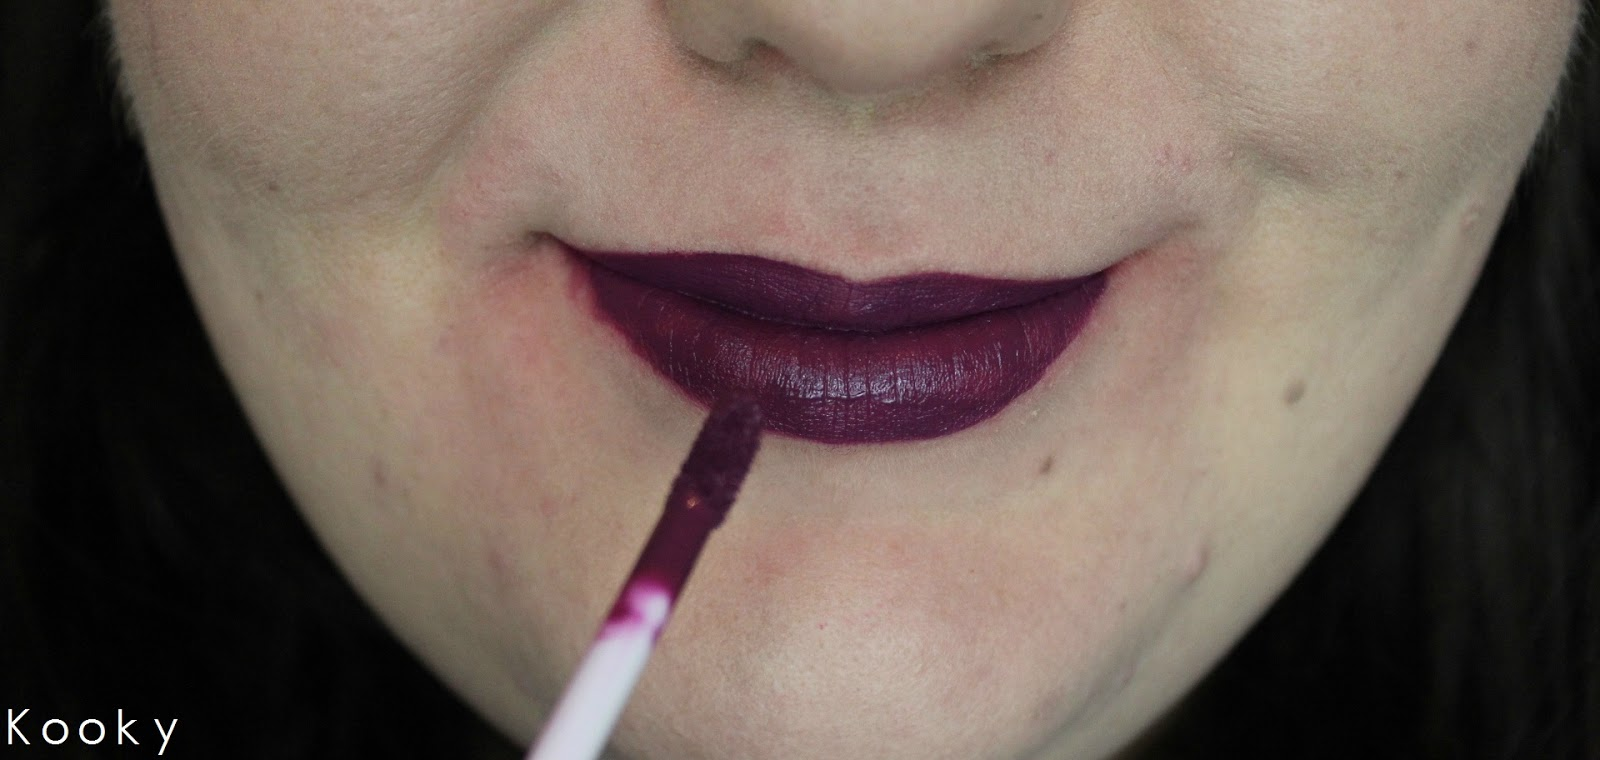 a liquid lipstick in berry shade